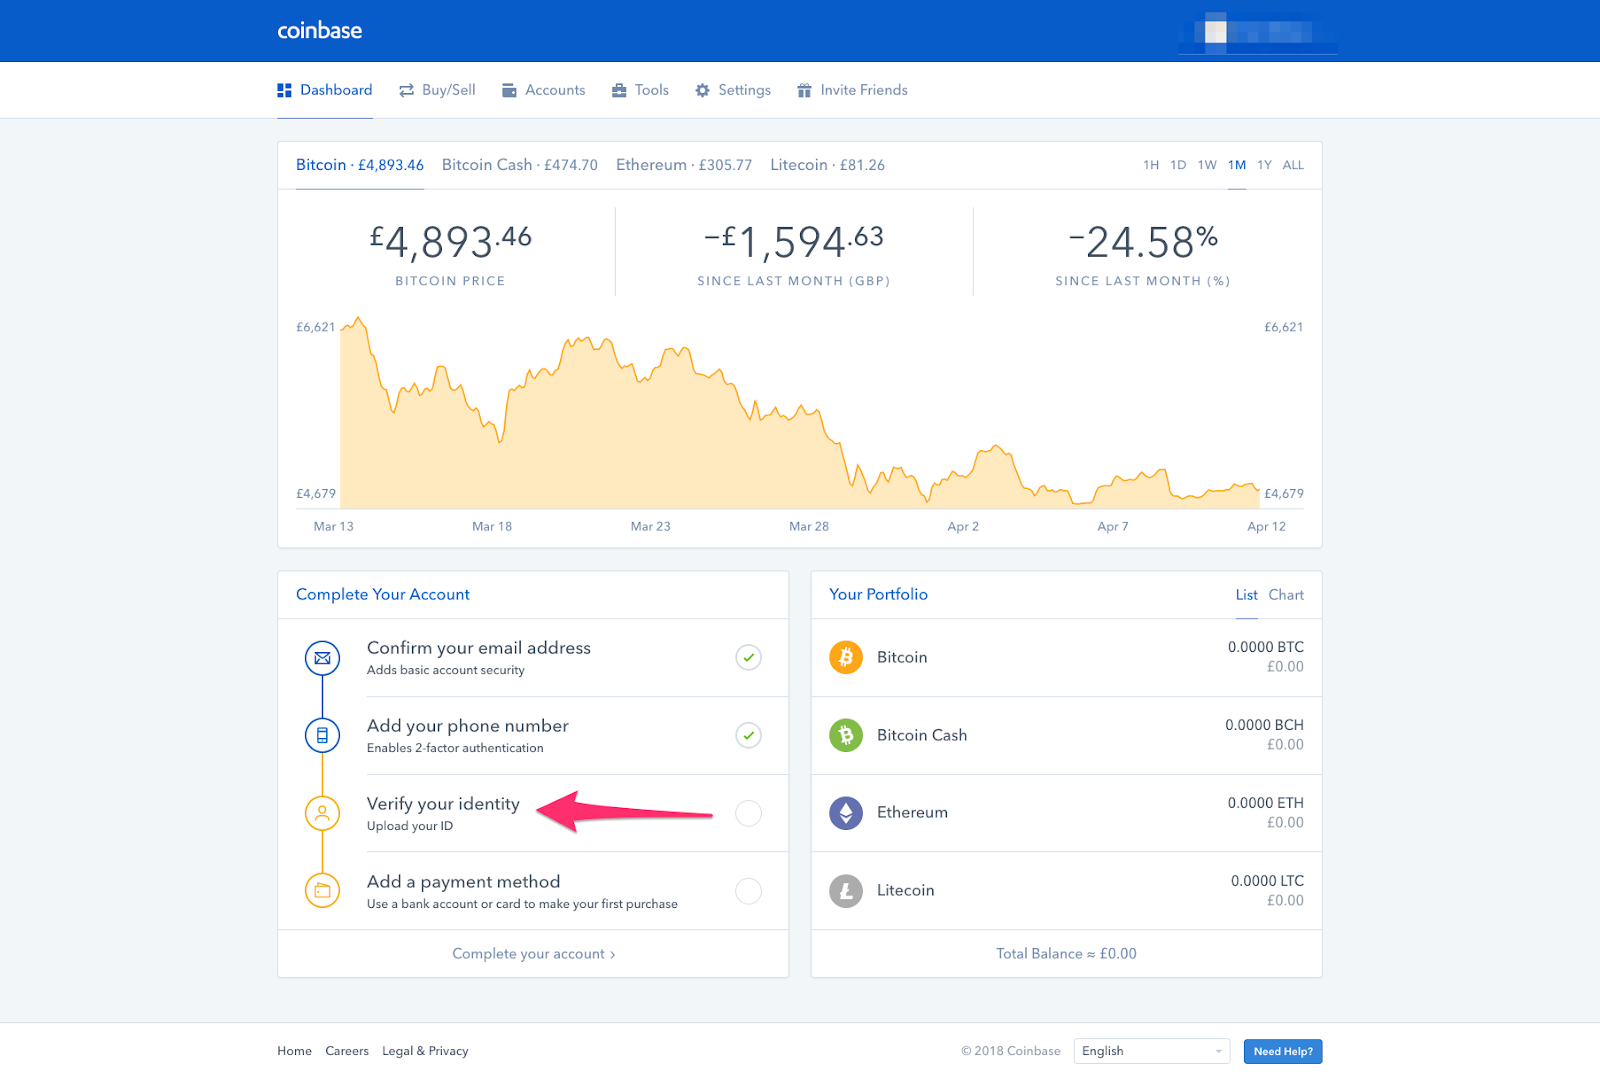 what cryptocurrencies can you buy on coinbase